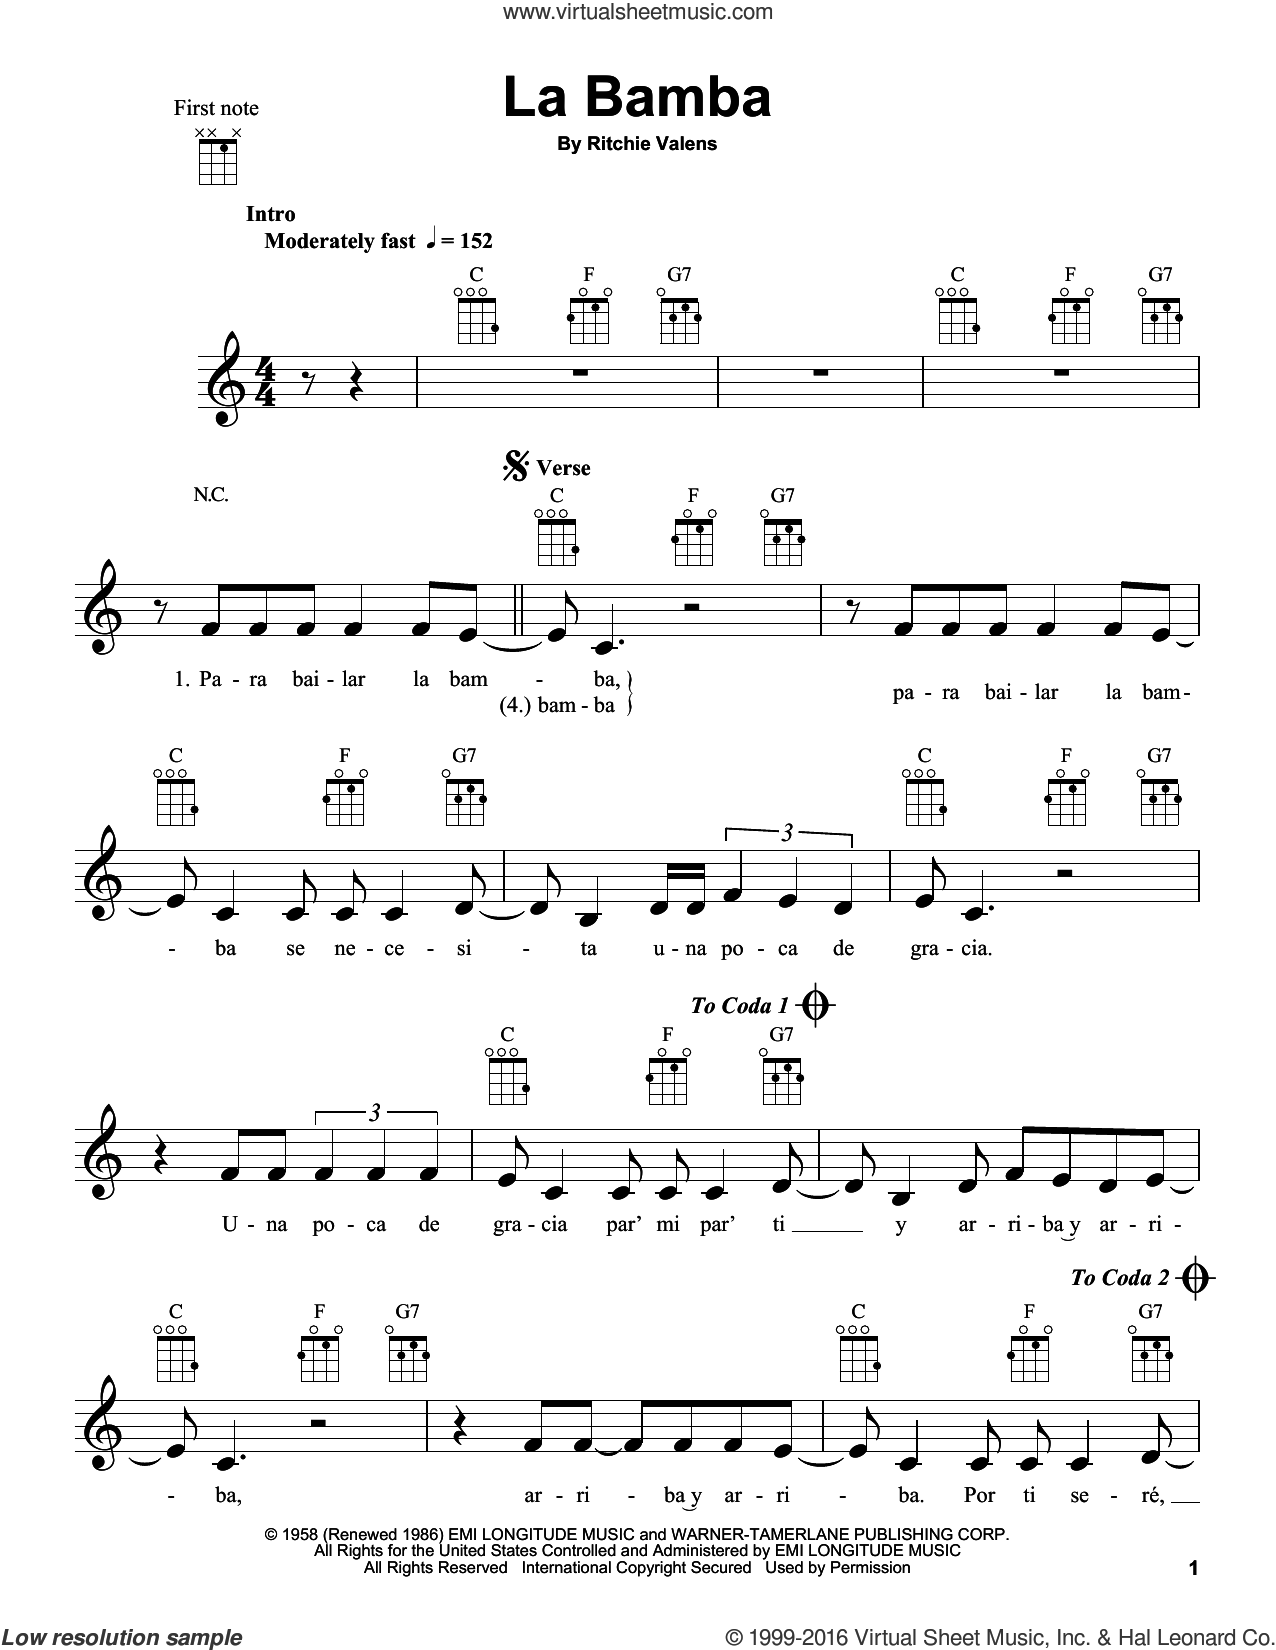 La Bamba sheet music for ukulele by Ritchie Valens and Los Lobos, intermediate skill level